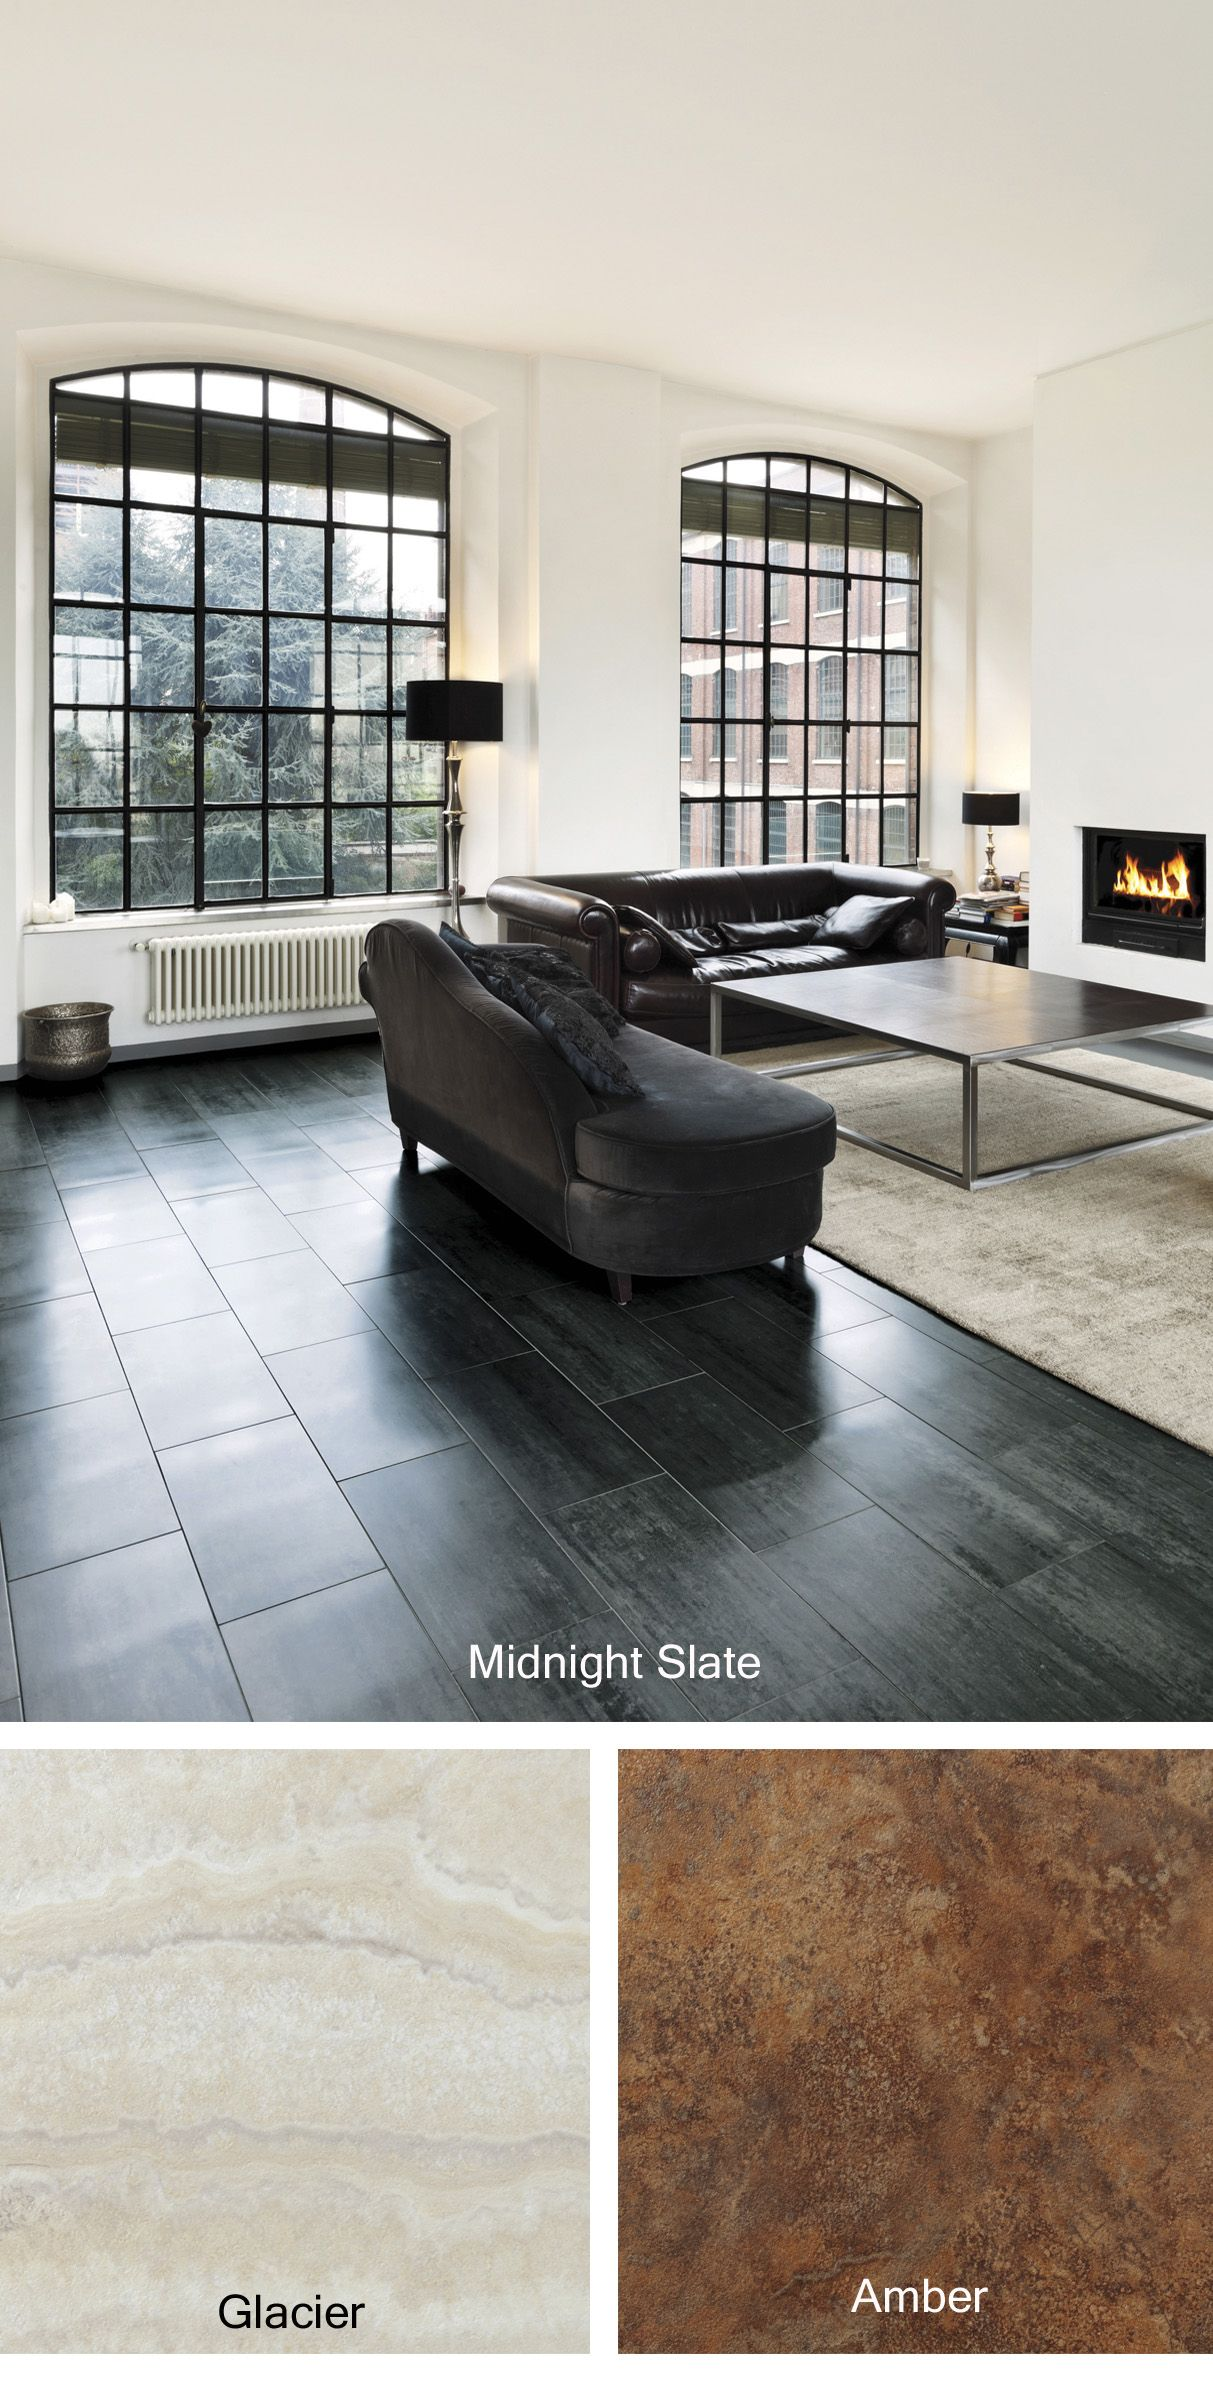 Make A Bold Statement With The Midnight Slate Sleek Black Luxury Vinyl Floor Tile That Is Great For Any Room